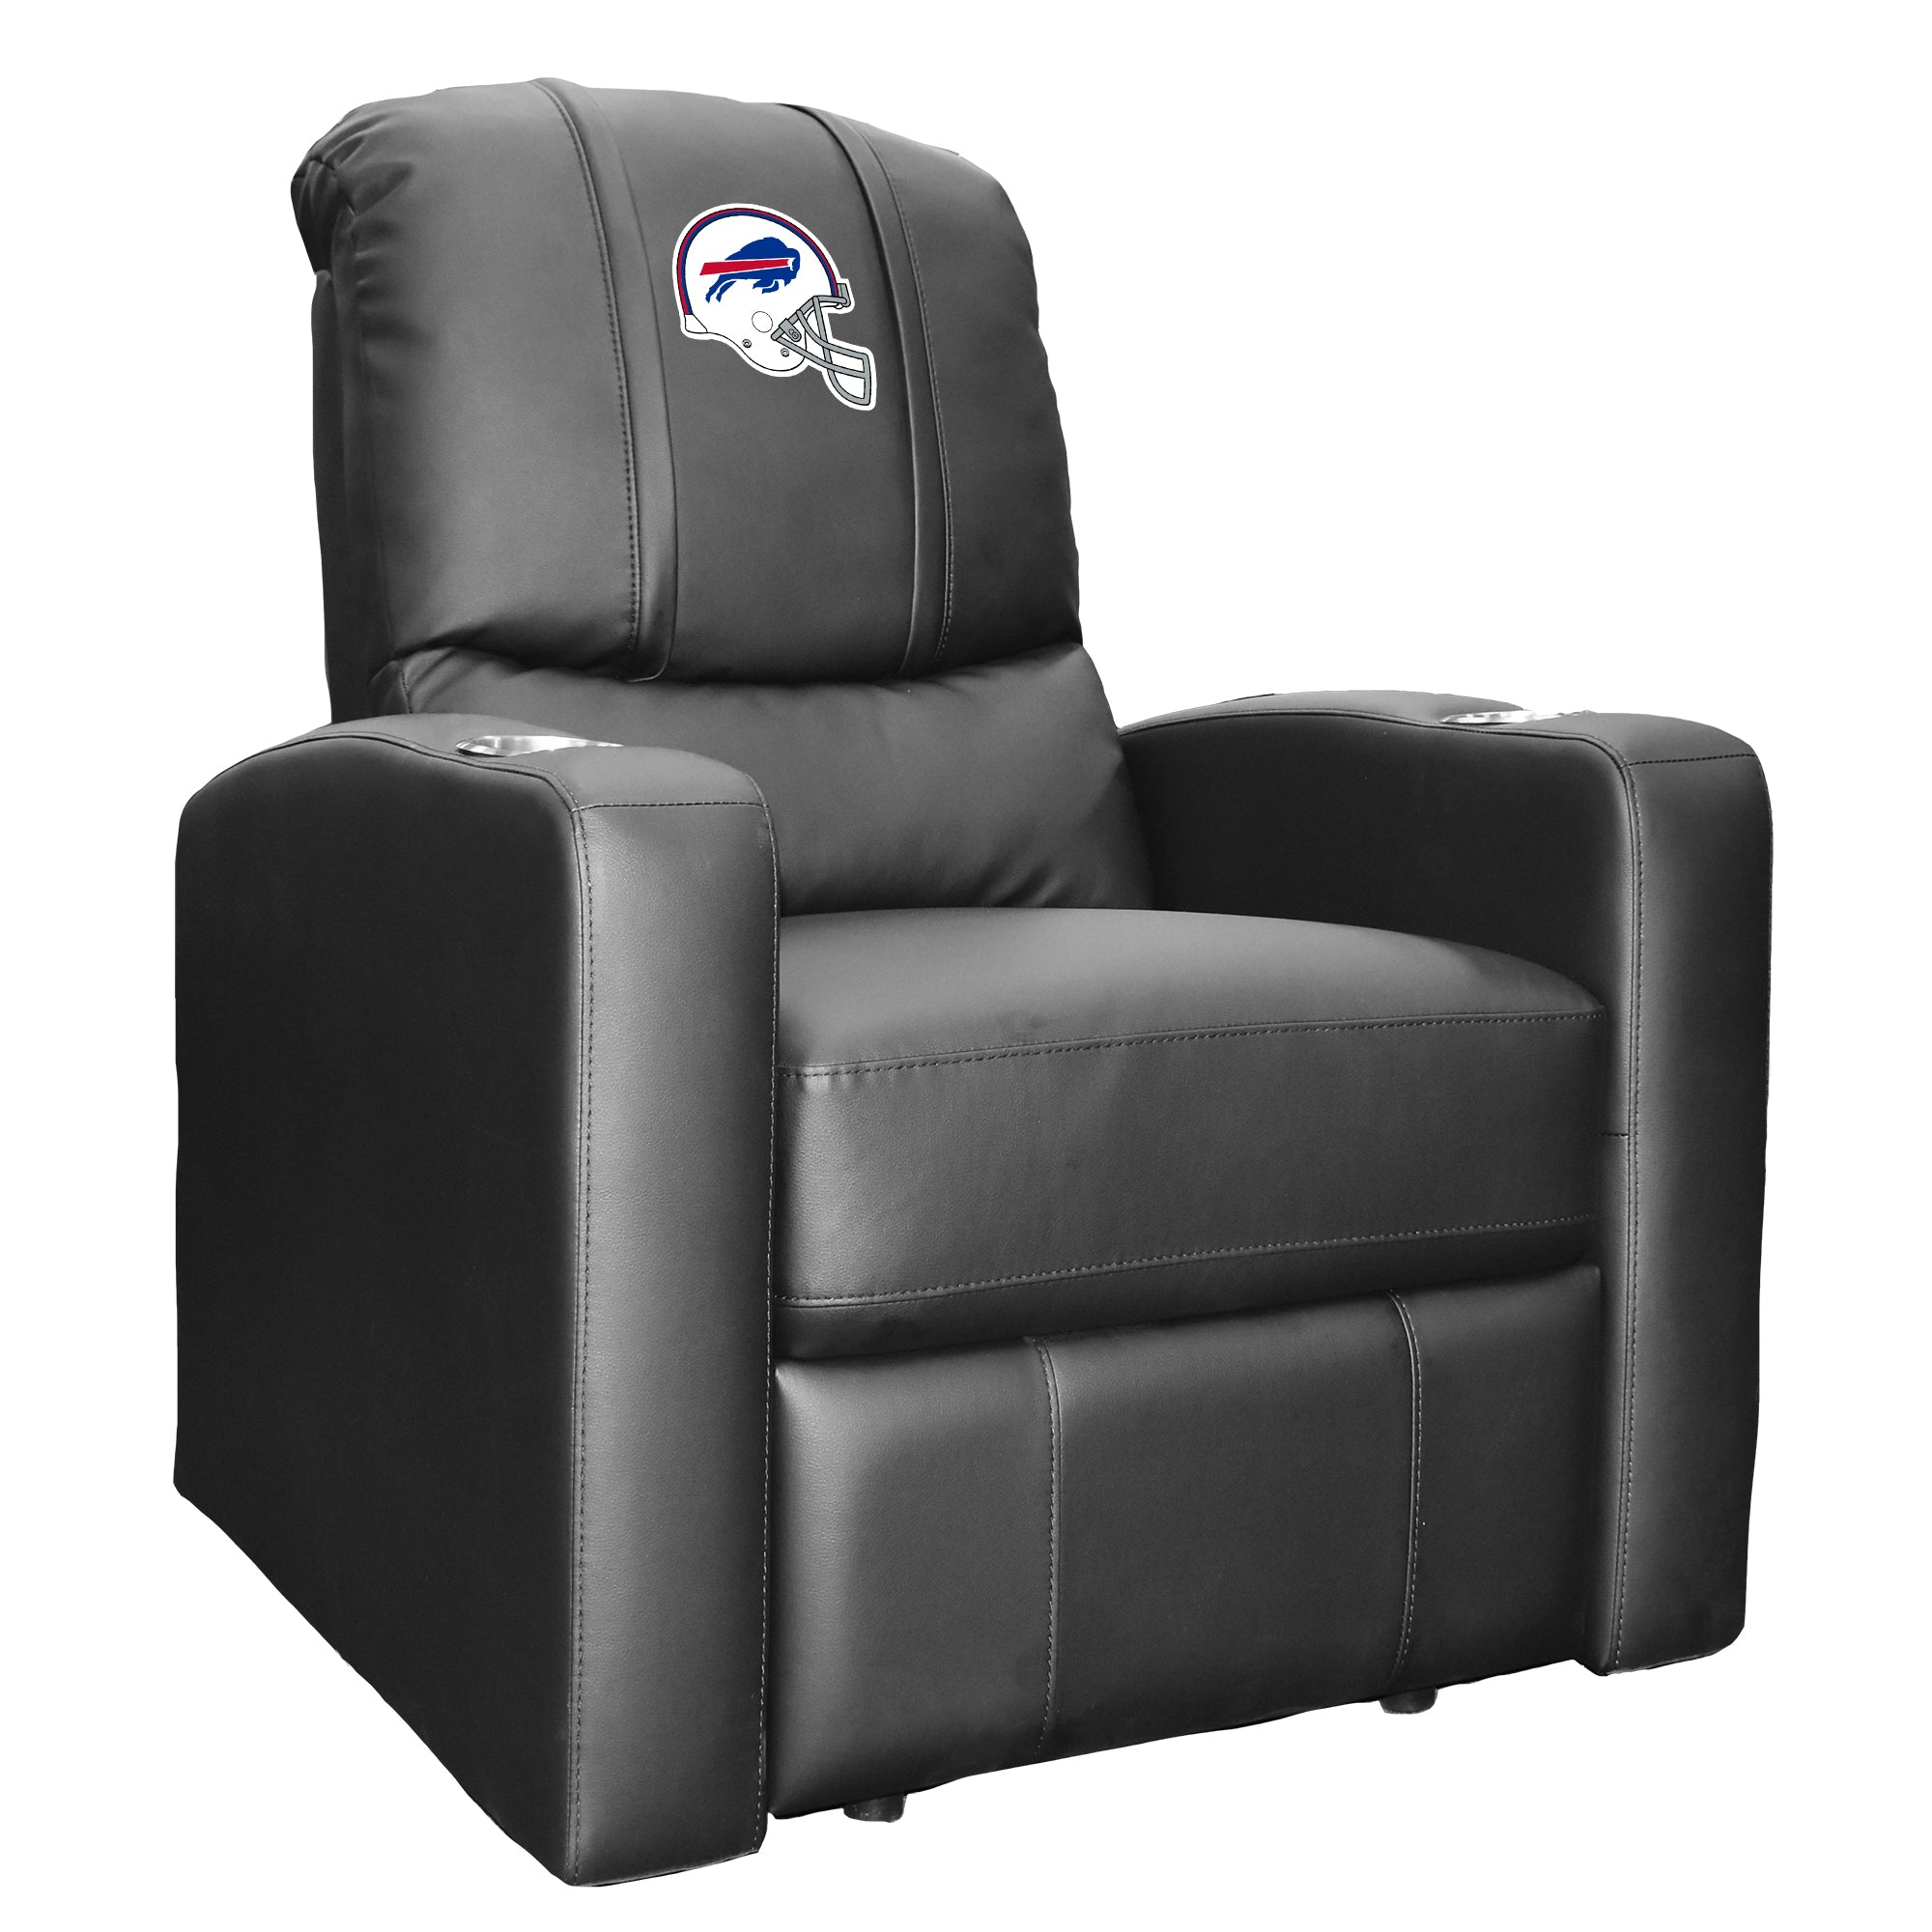 Stealth Recliner with  Buffalo Bills Helmet Logo